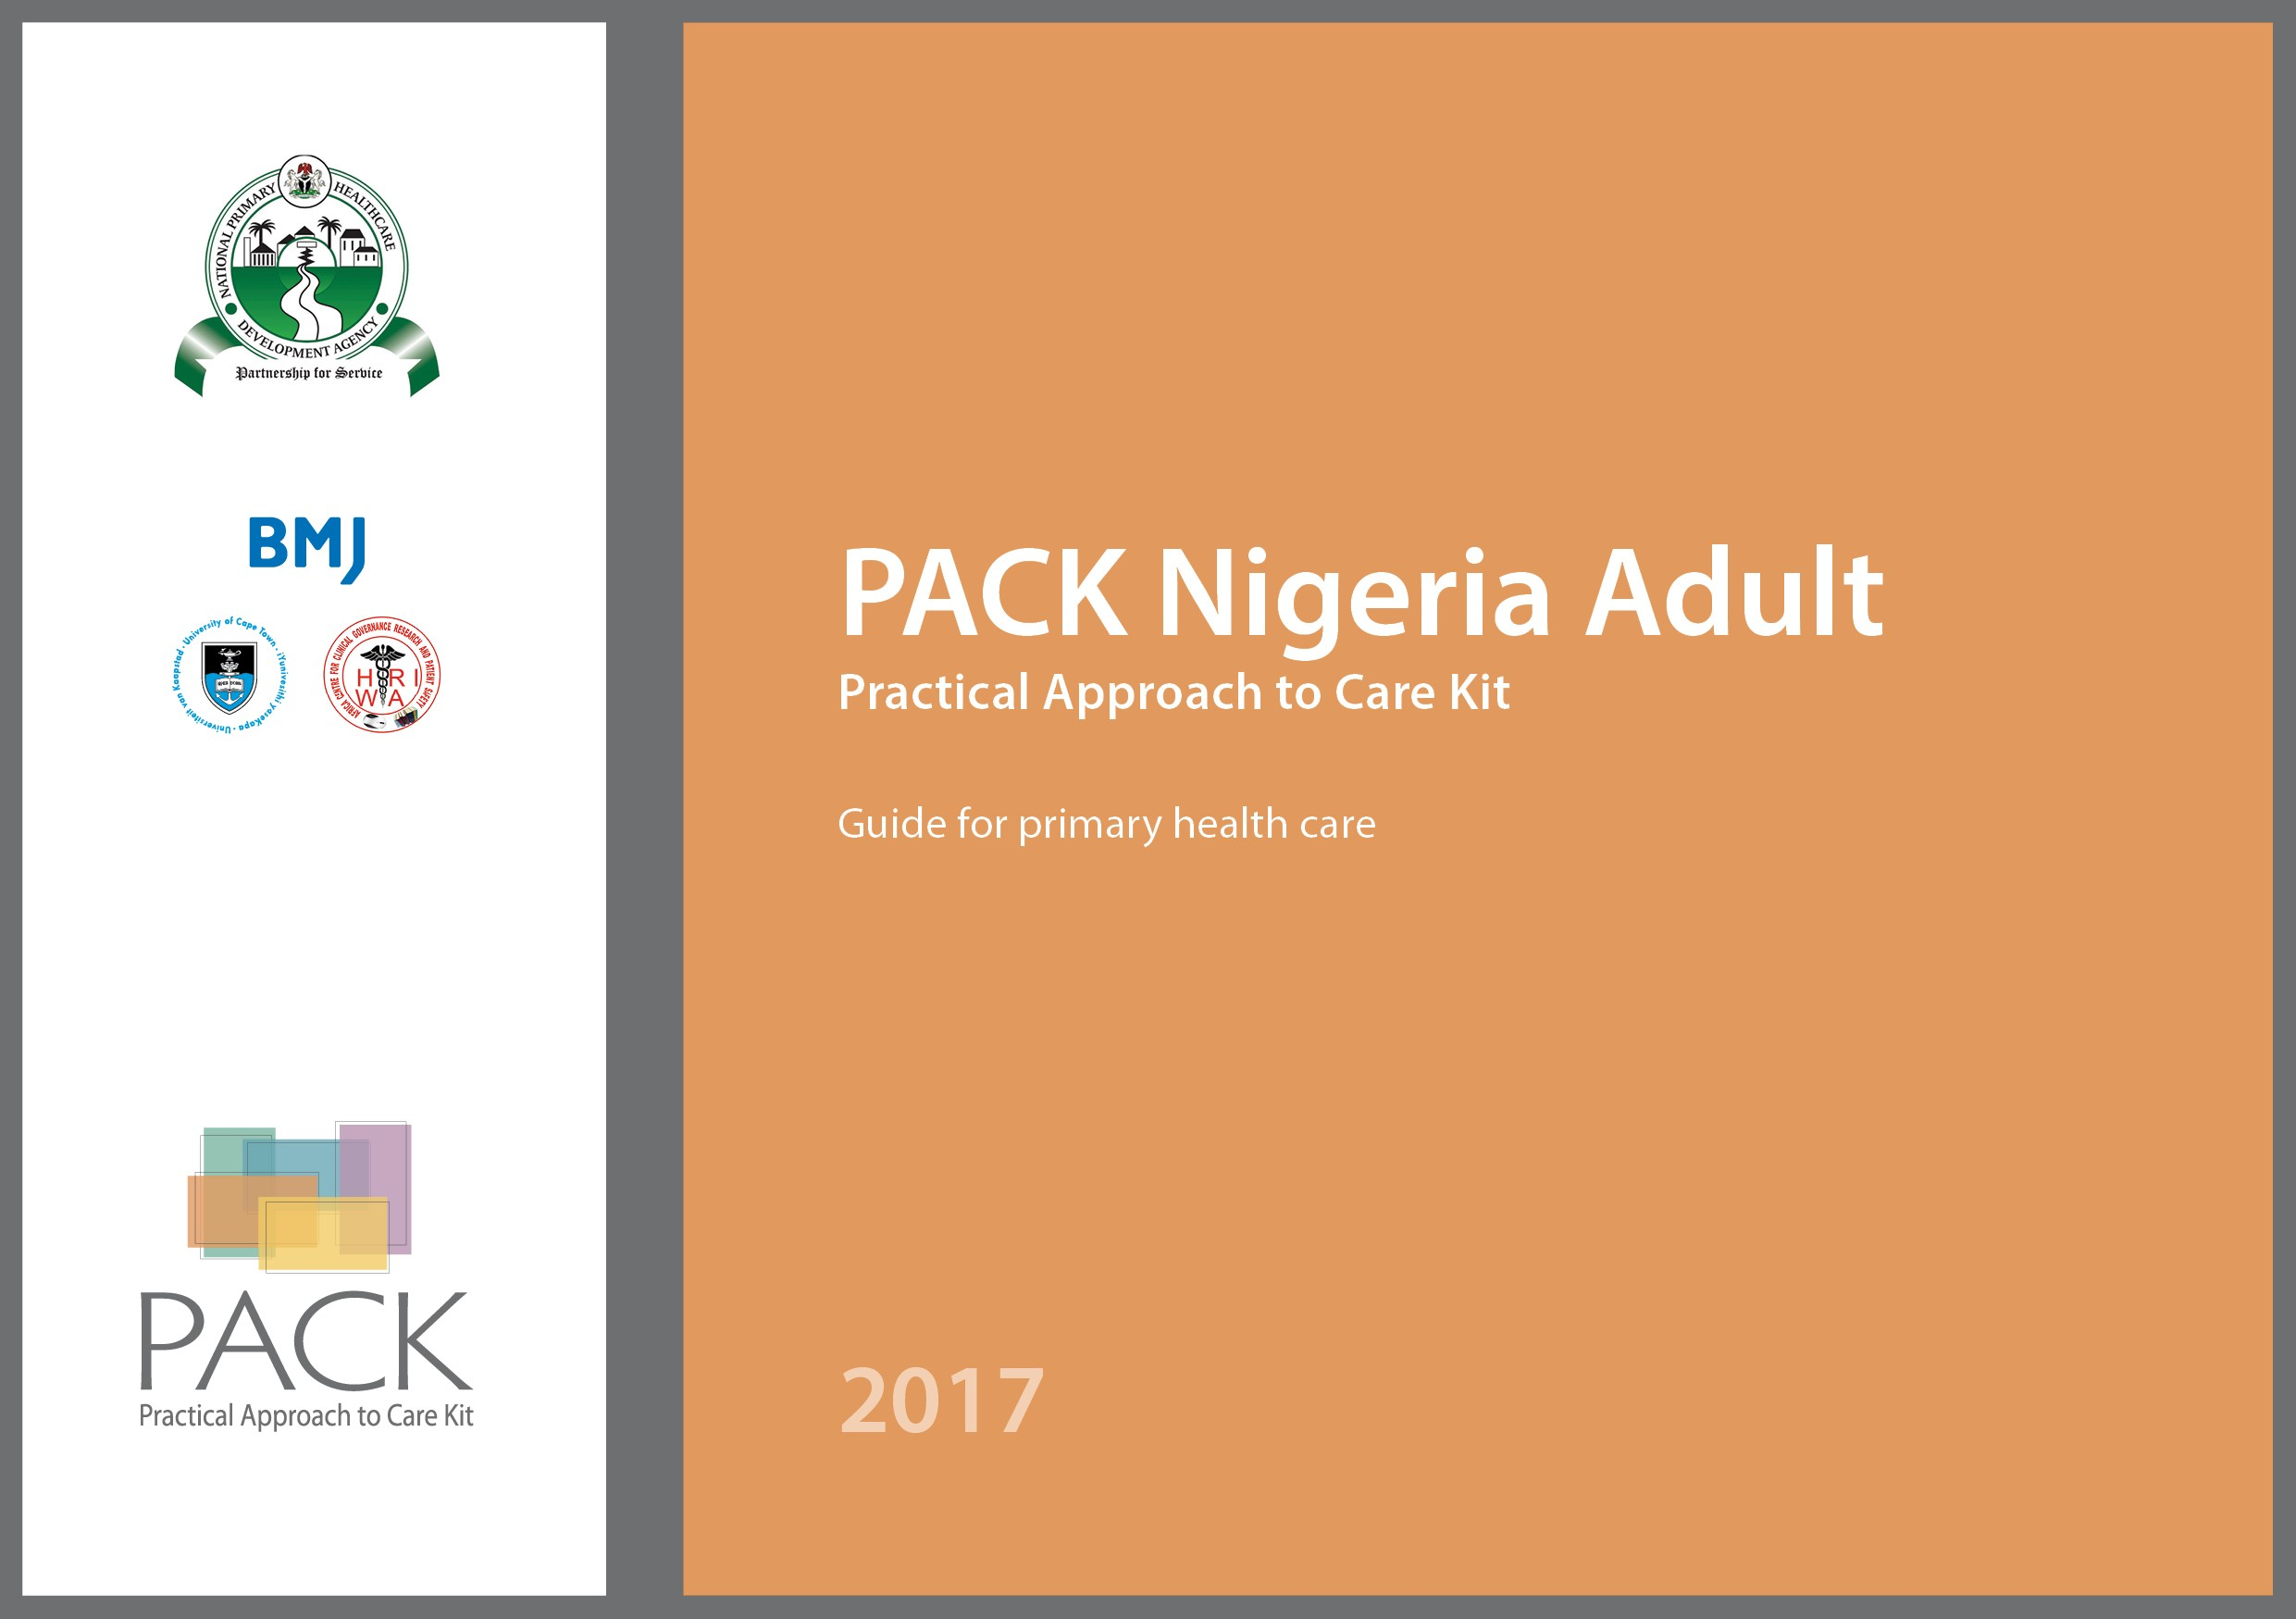 PACK Nigeria Adult 2017 eBook